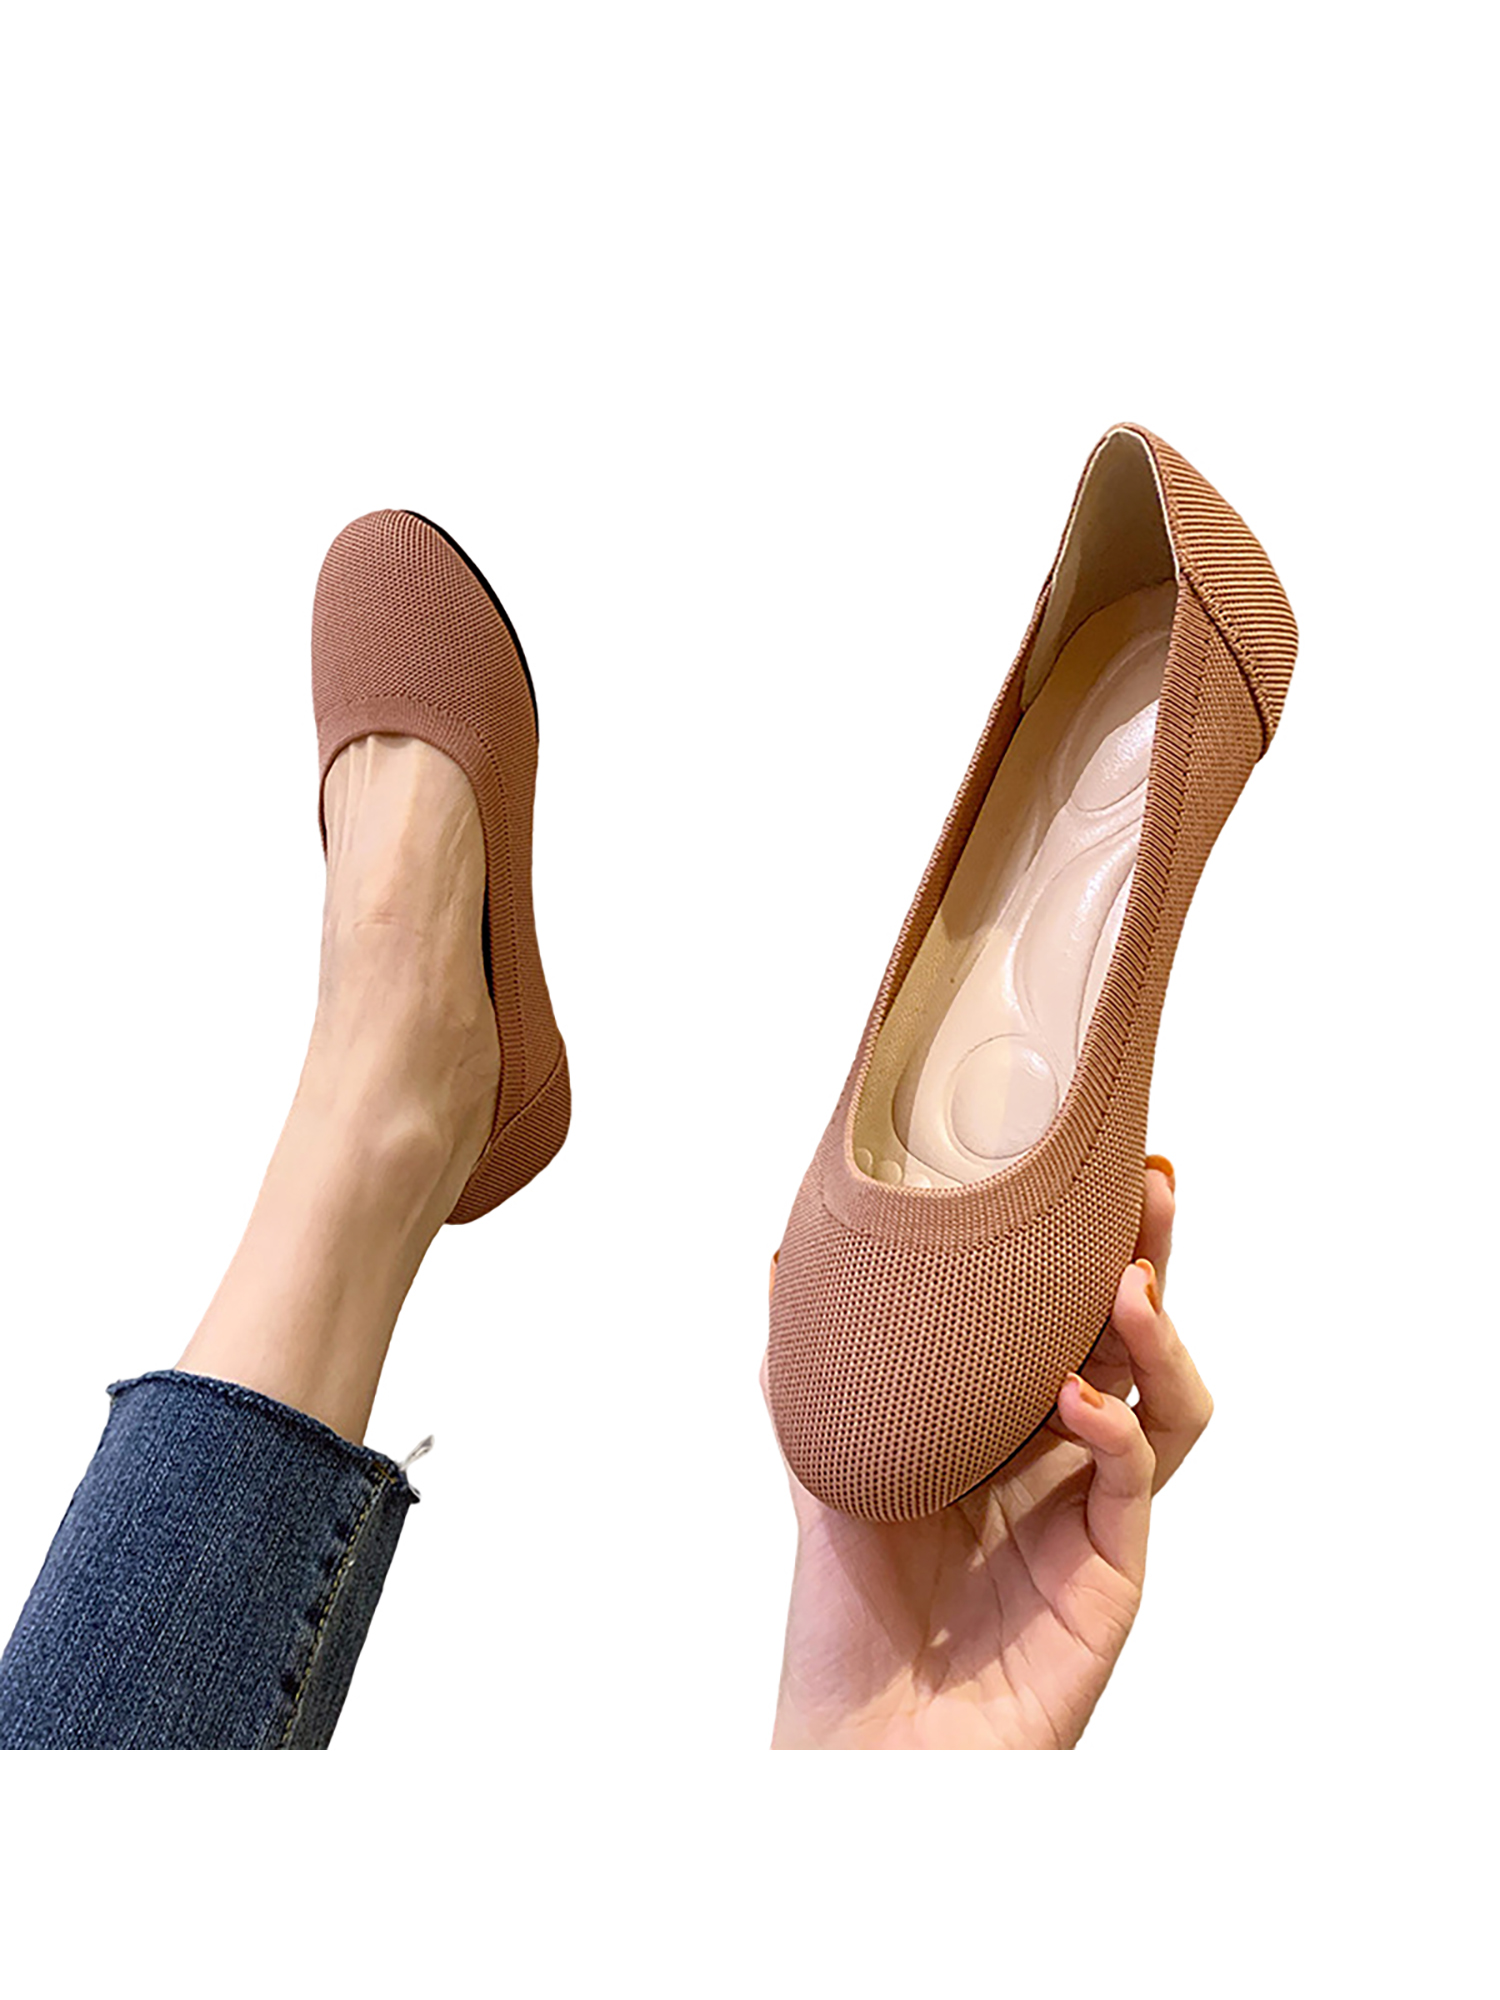 Details about  /Women Low Top Round Toe Lace Up Flats Shoes Casual Walking Moccasins Outdoor B